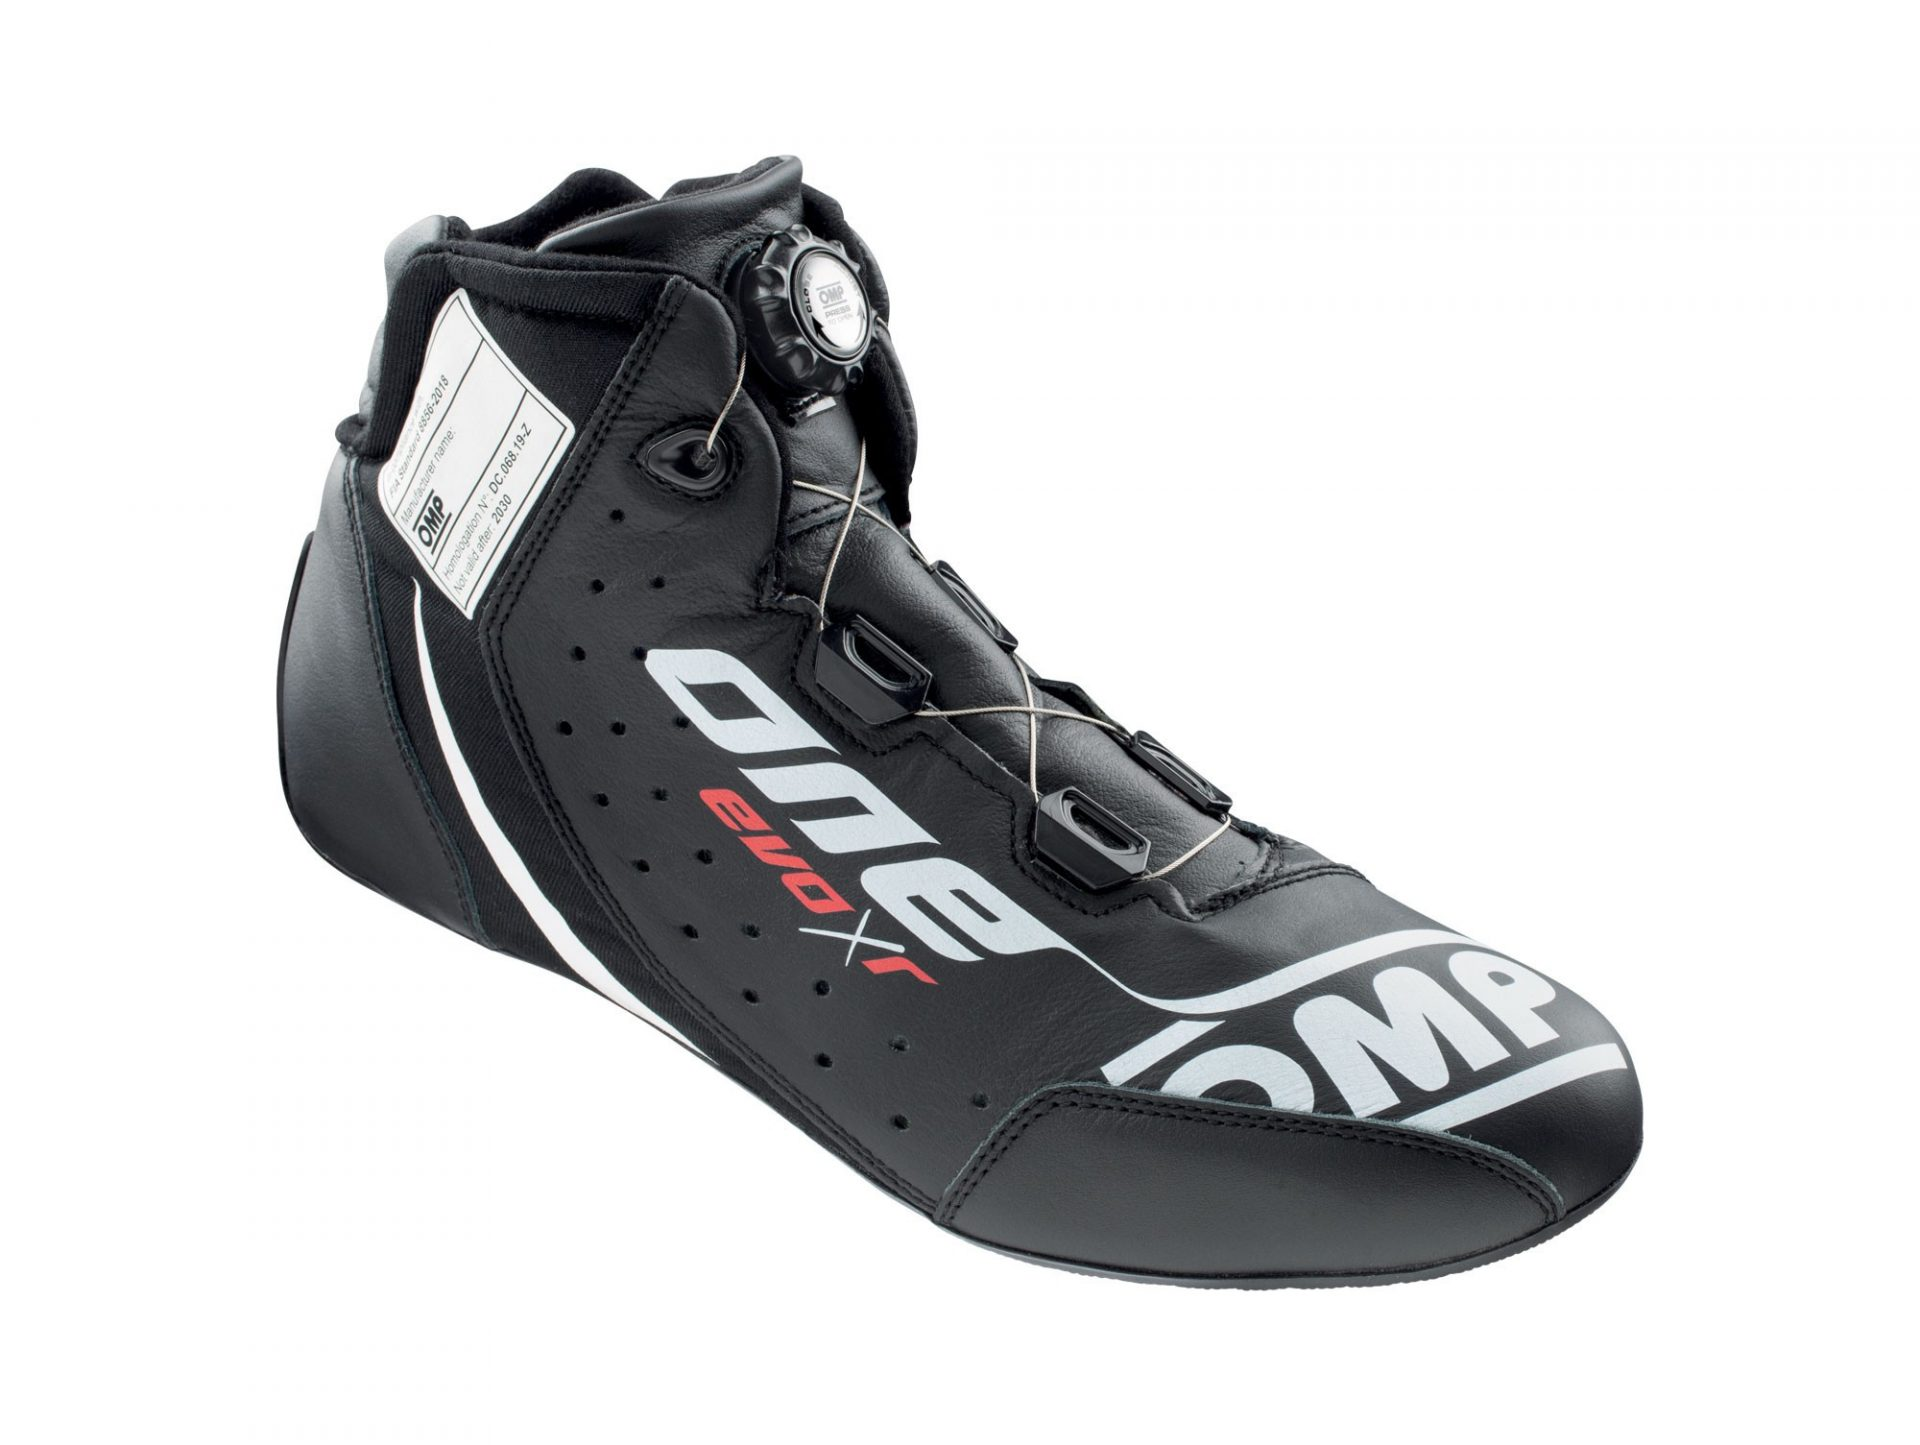 Нов продукт: OMP One Evo X R, FIA Shoes